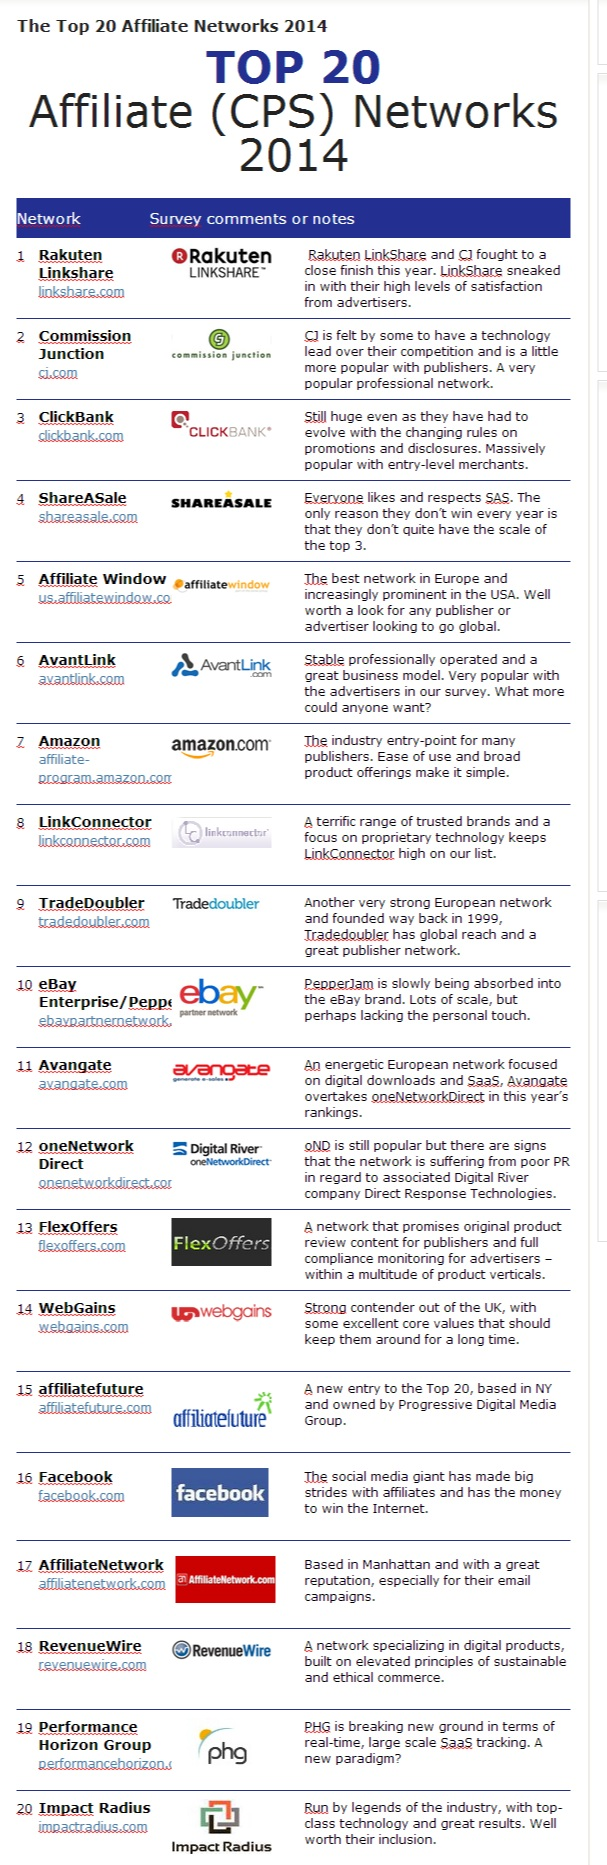 The Top 20 Affiliate Networks 2014 - mThink .